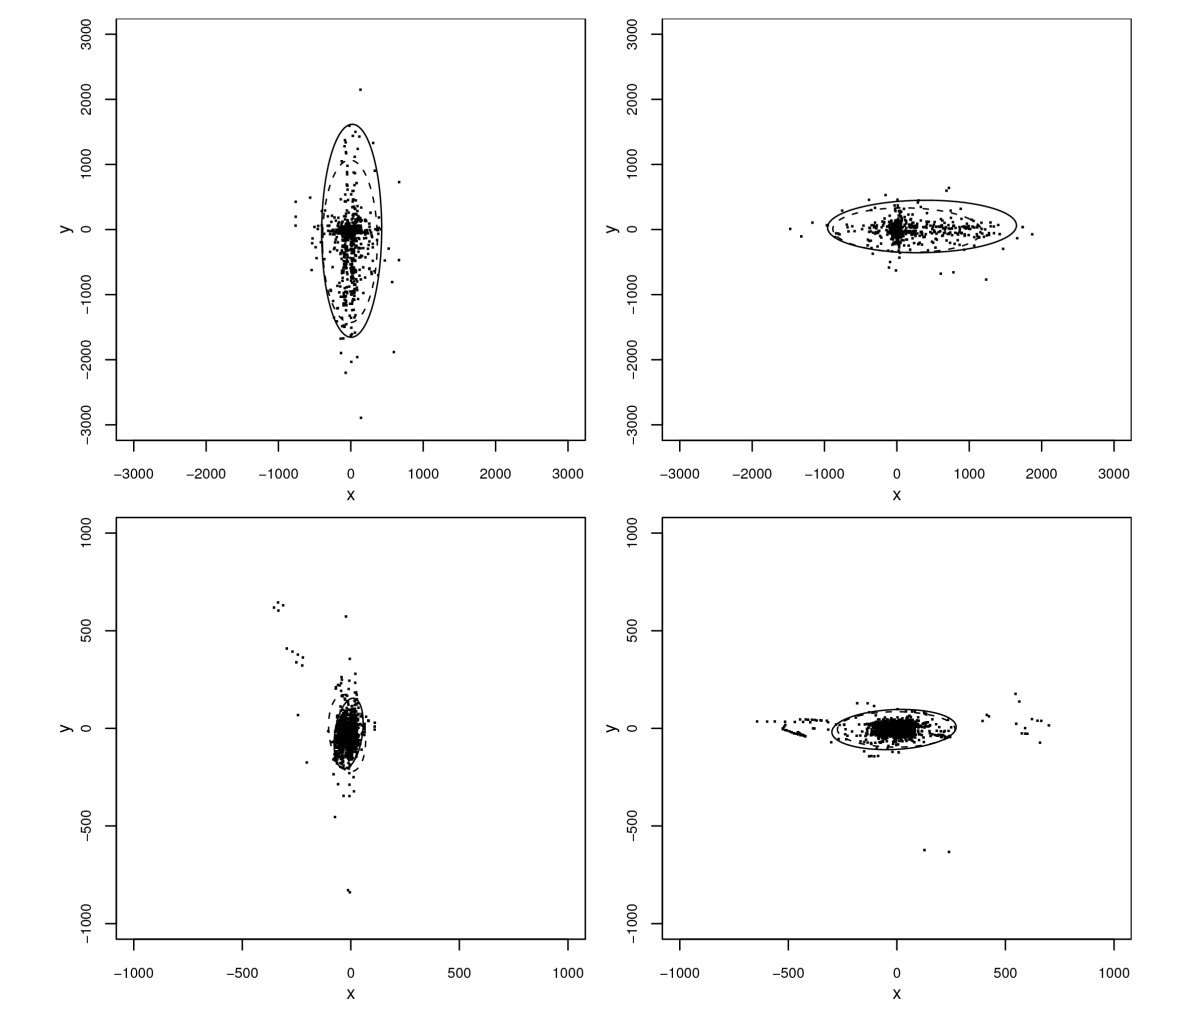 http://static-content.springer.com/image/art%3A10.1186%2F1476-072X-9-10/MediaObjects/12942_2009_Article_343_Fig8_HTML.jpg